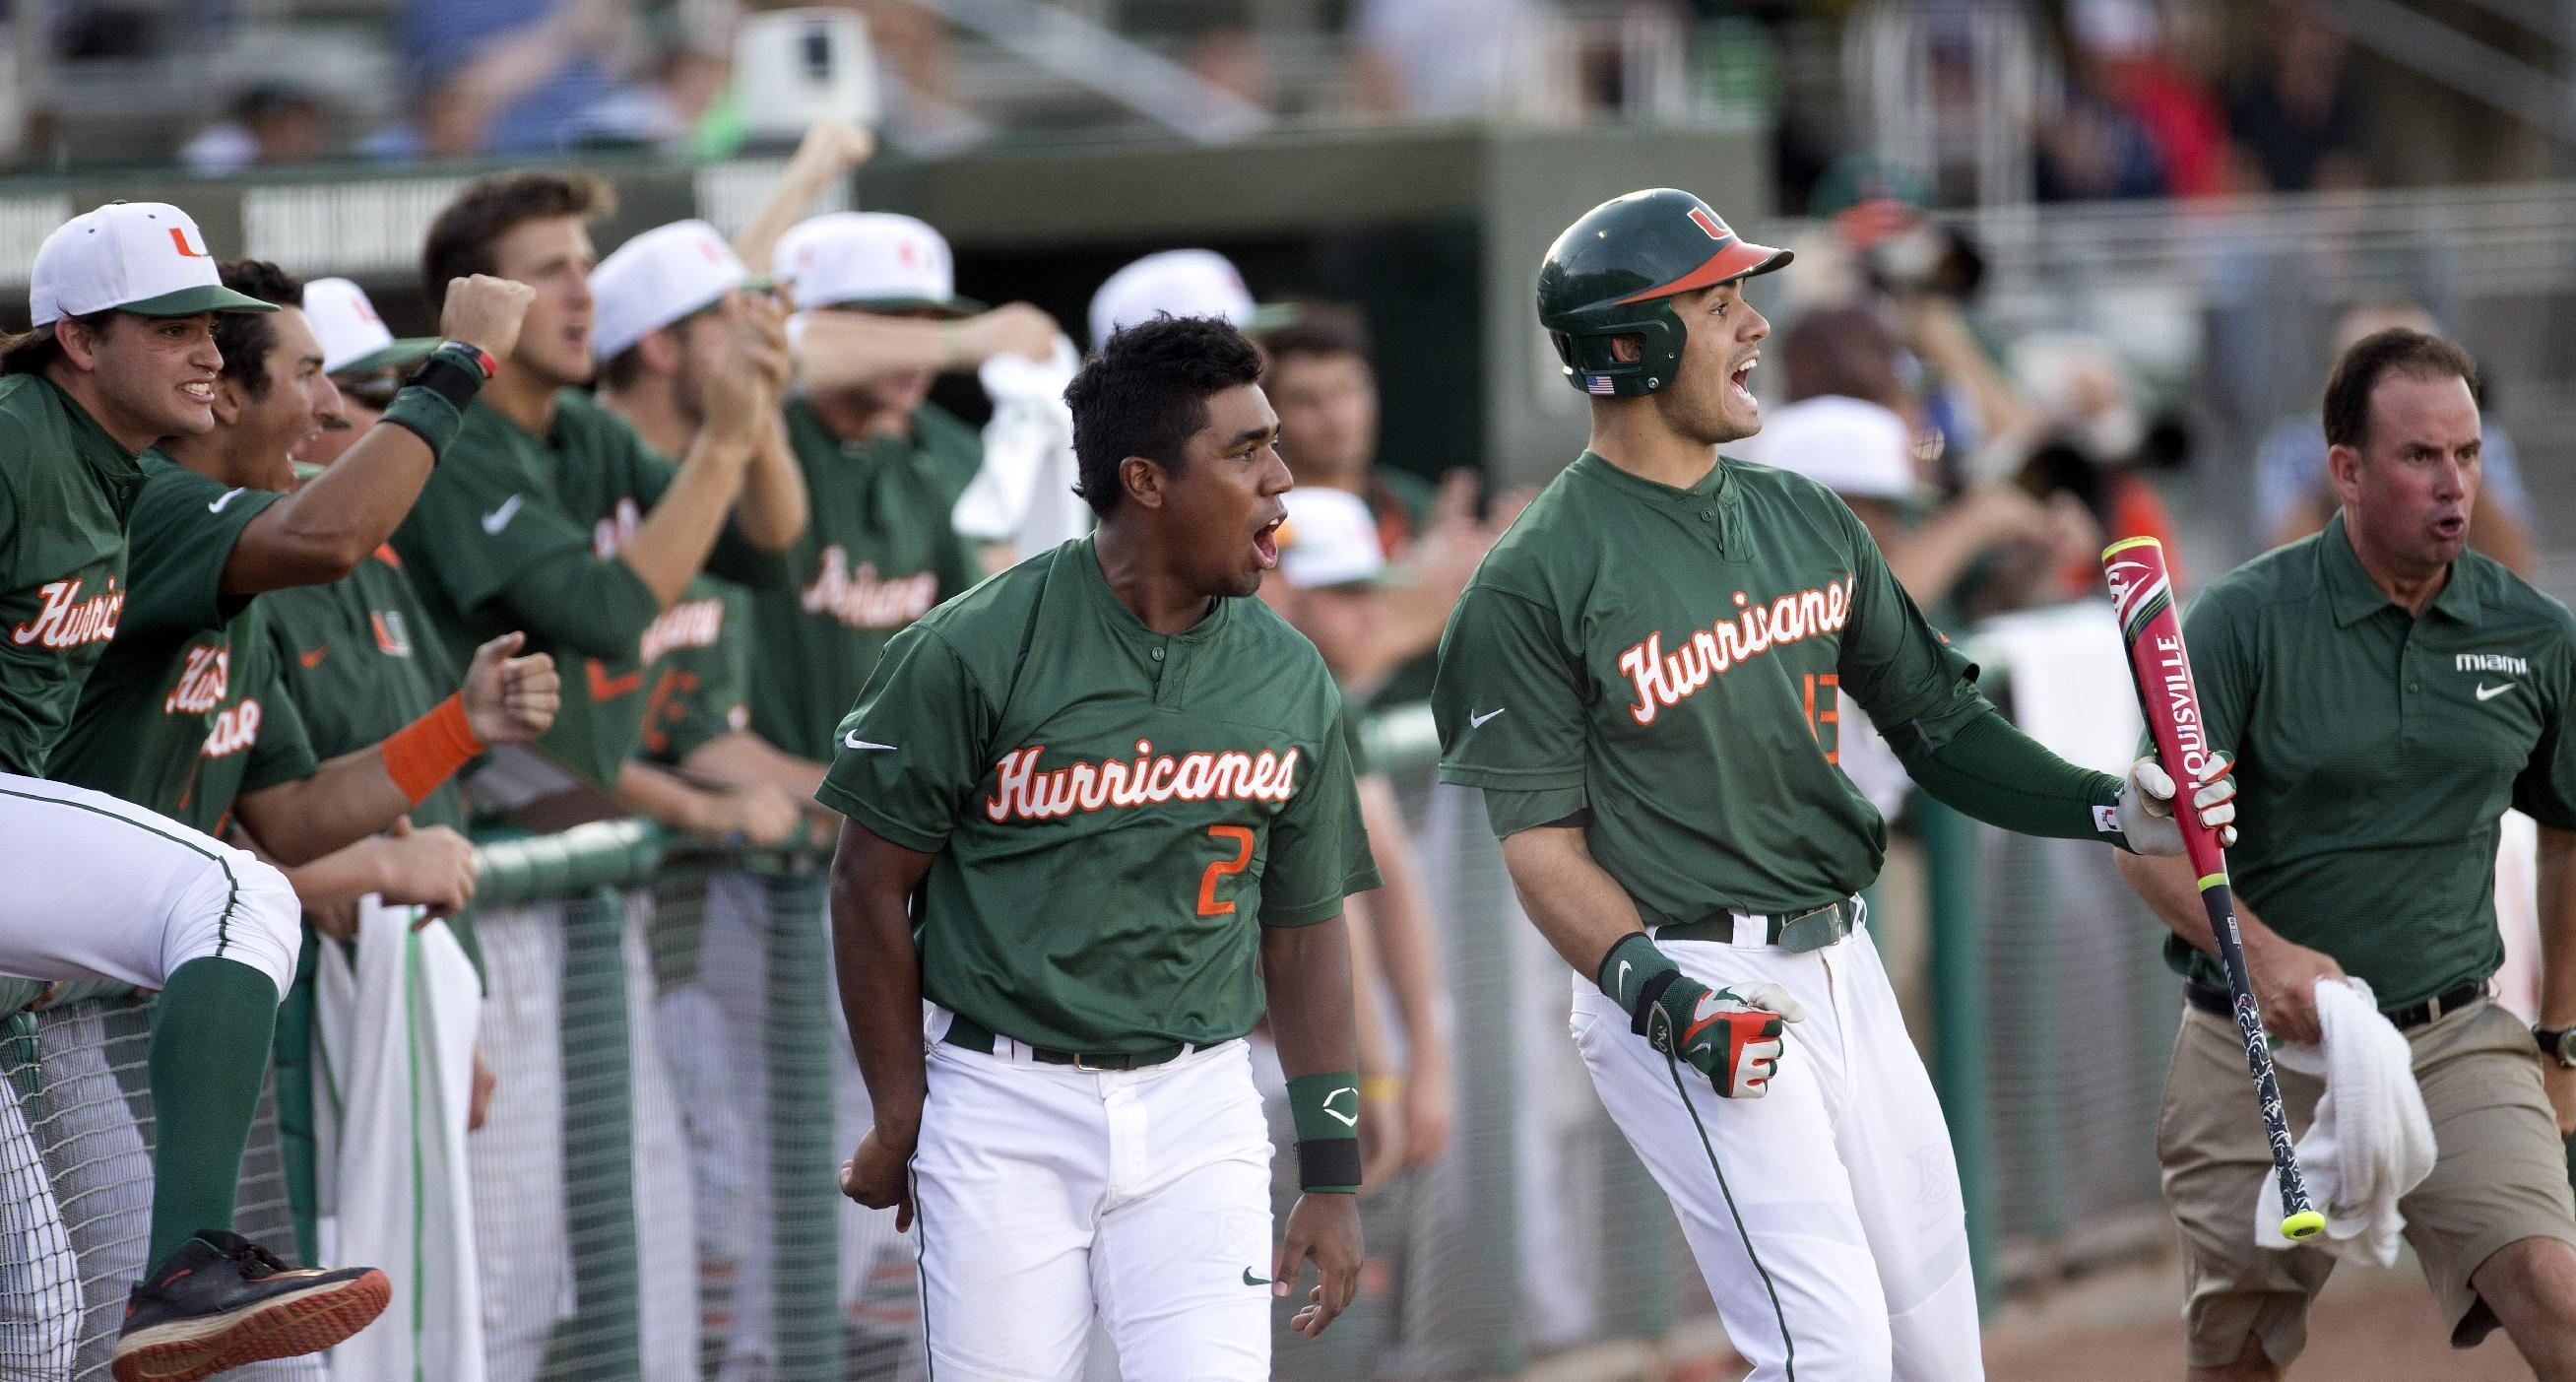 Hurricanes advance in regional 21-3 over Columbia